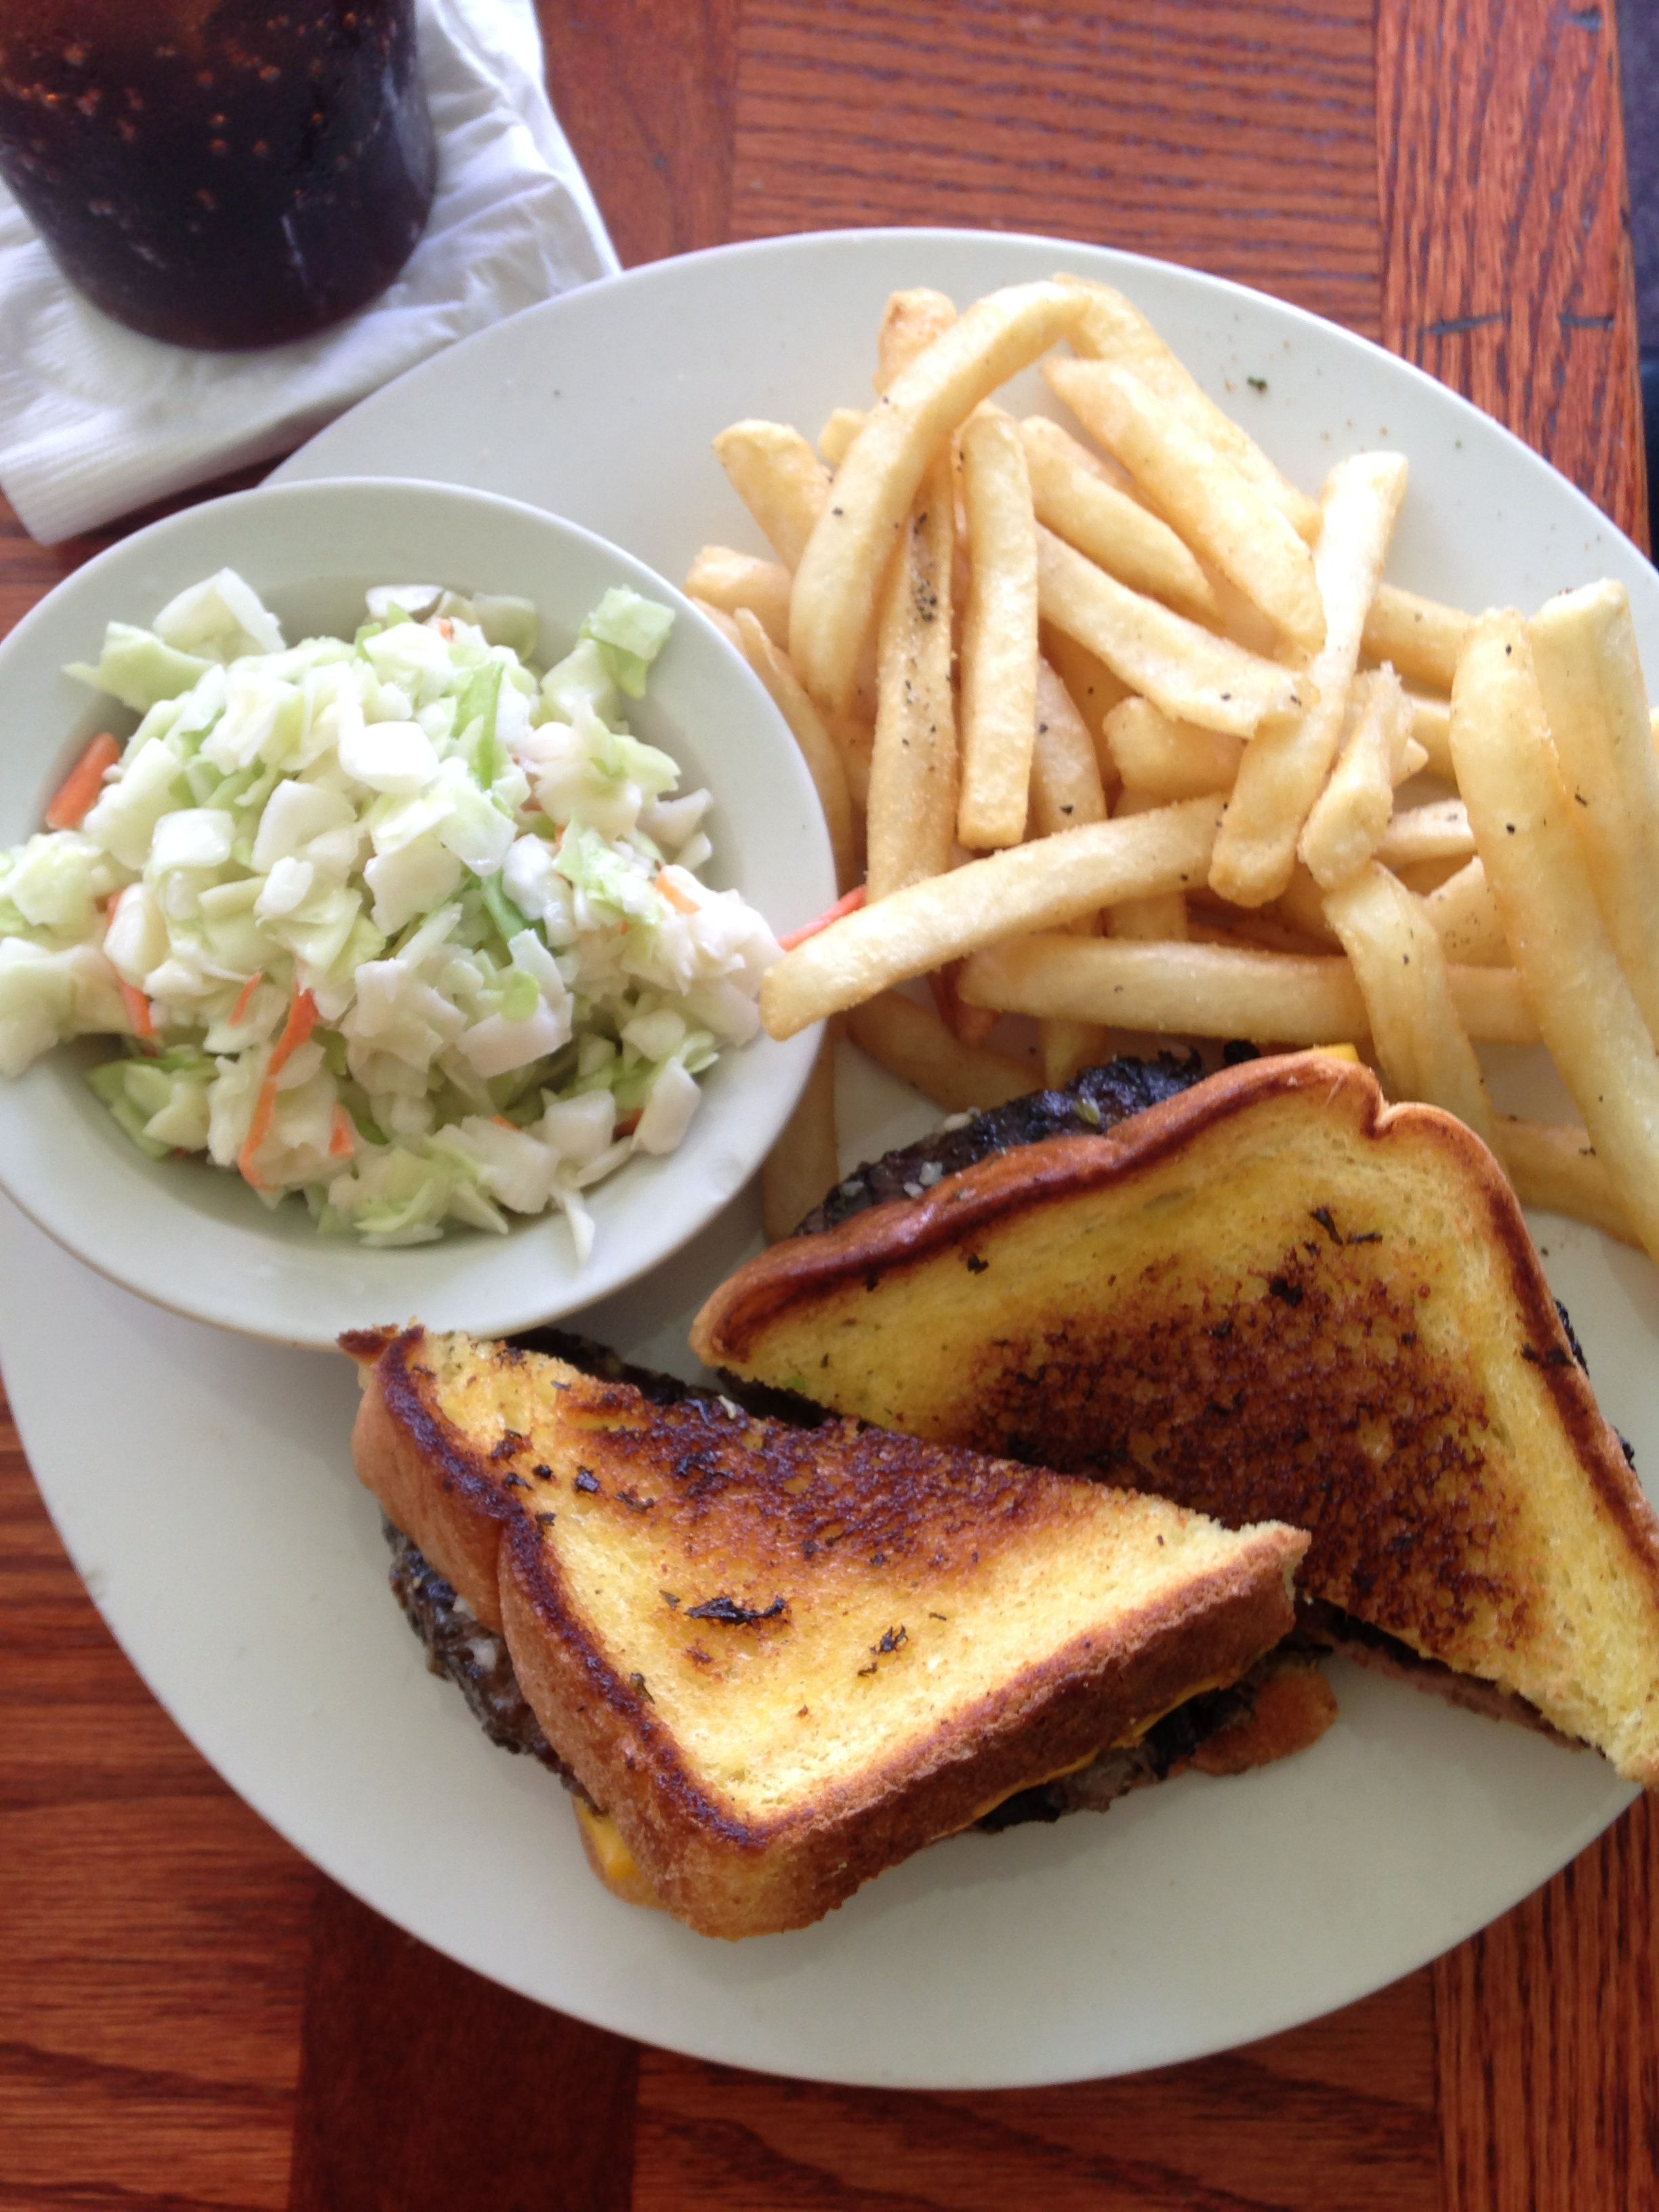 The American Patty Melt From Port Steak And Seafood Restaurant In Haines City Florida